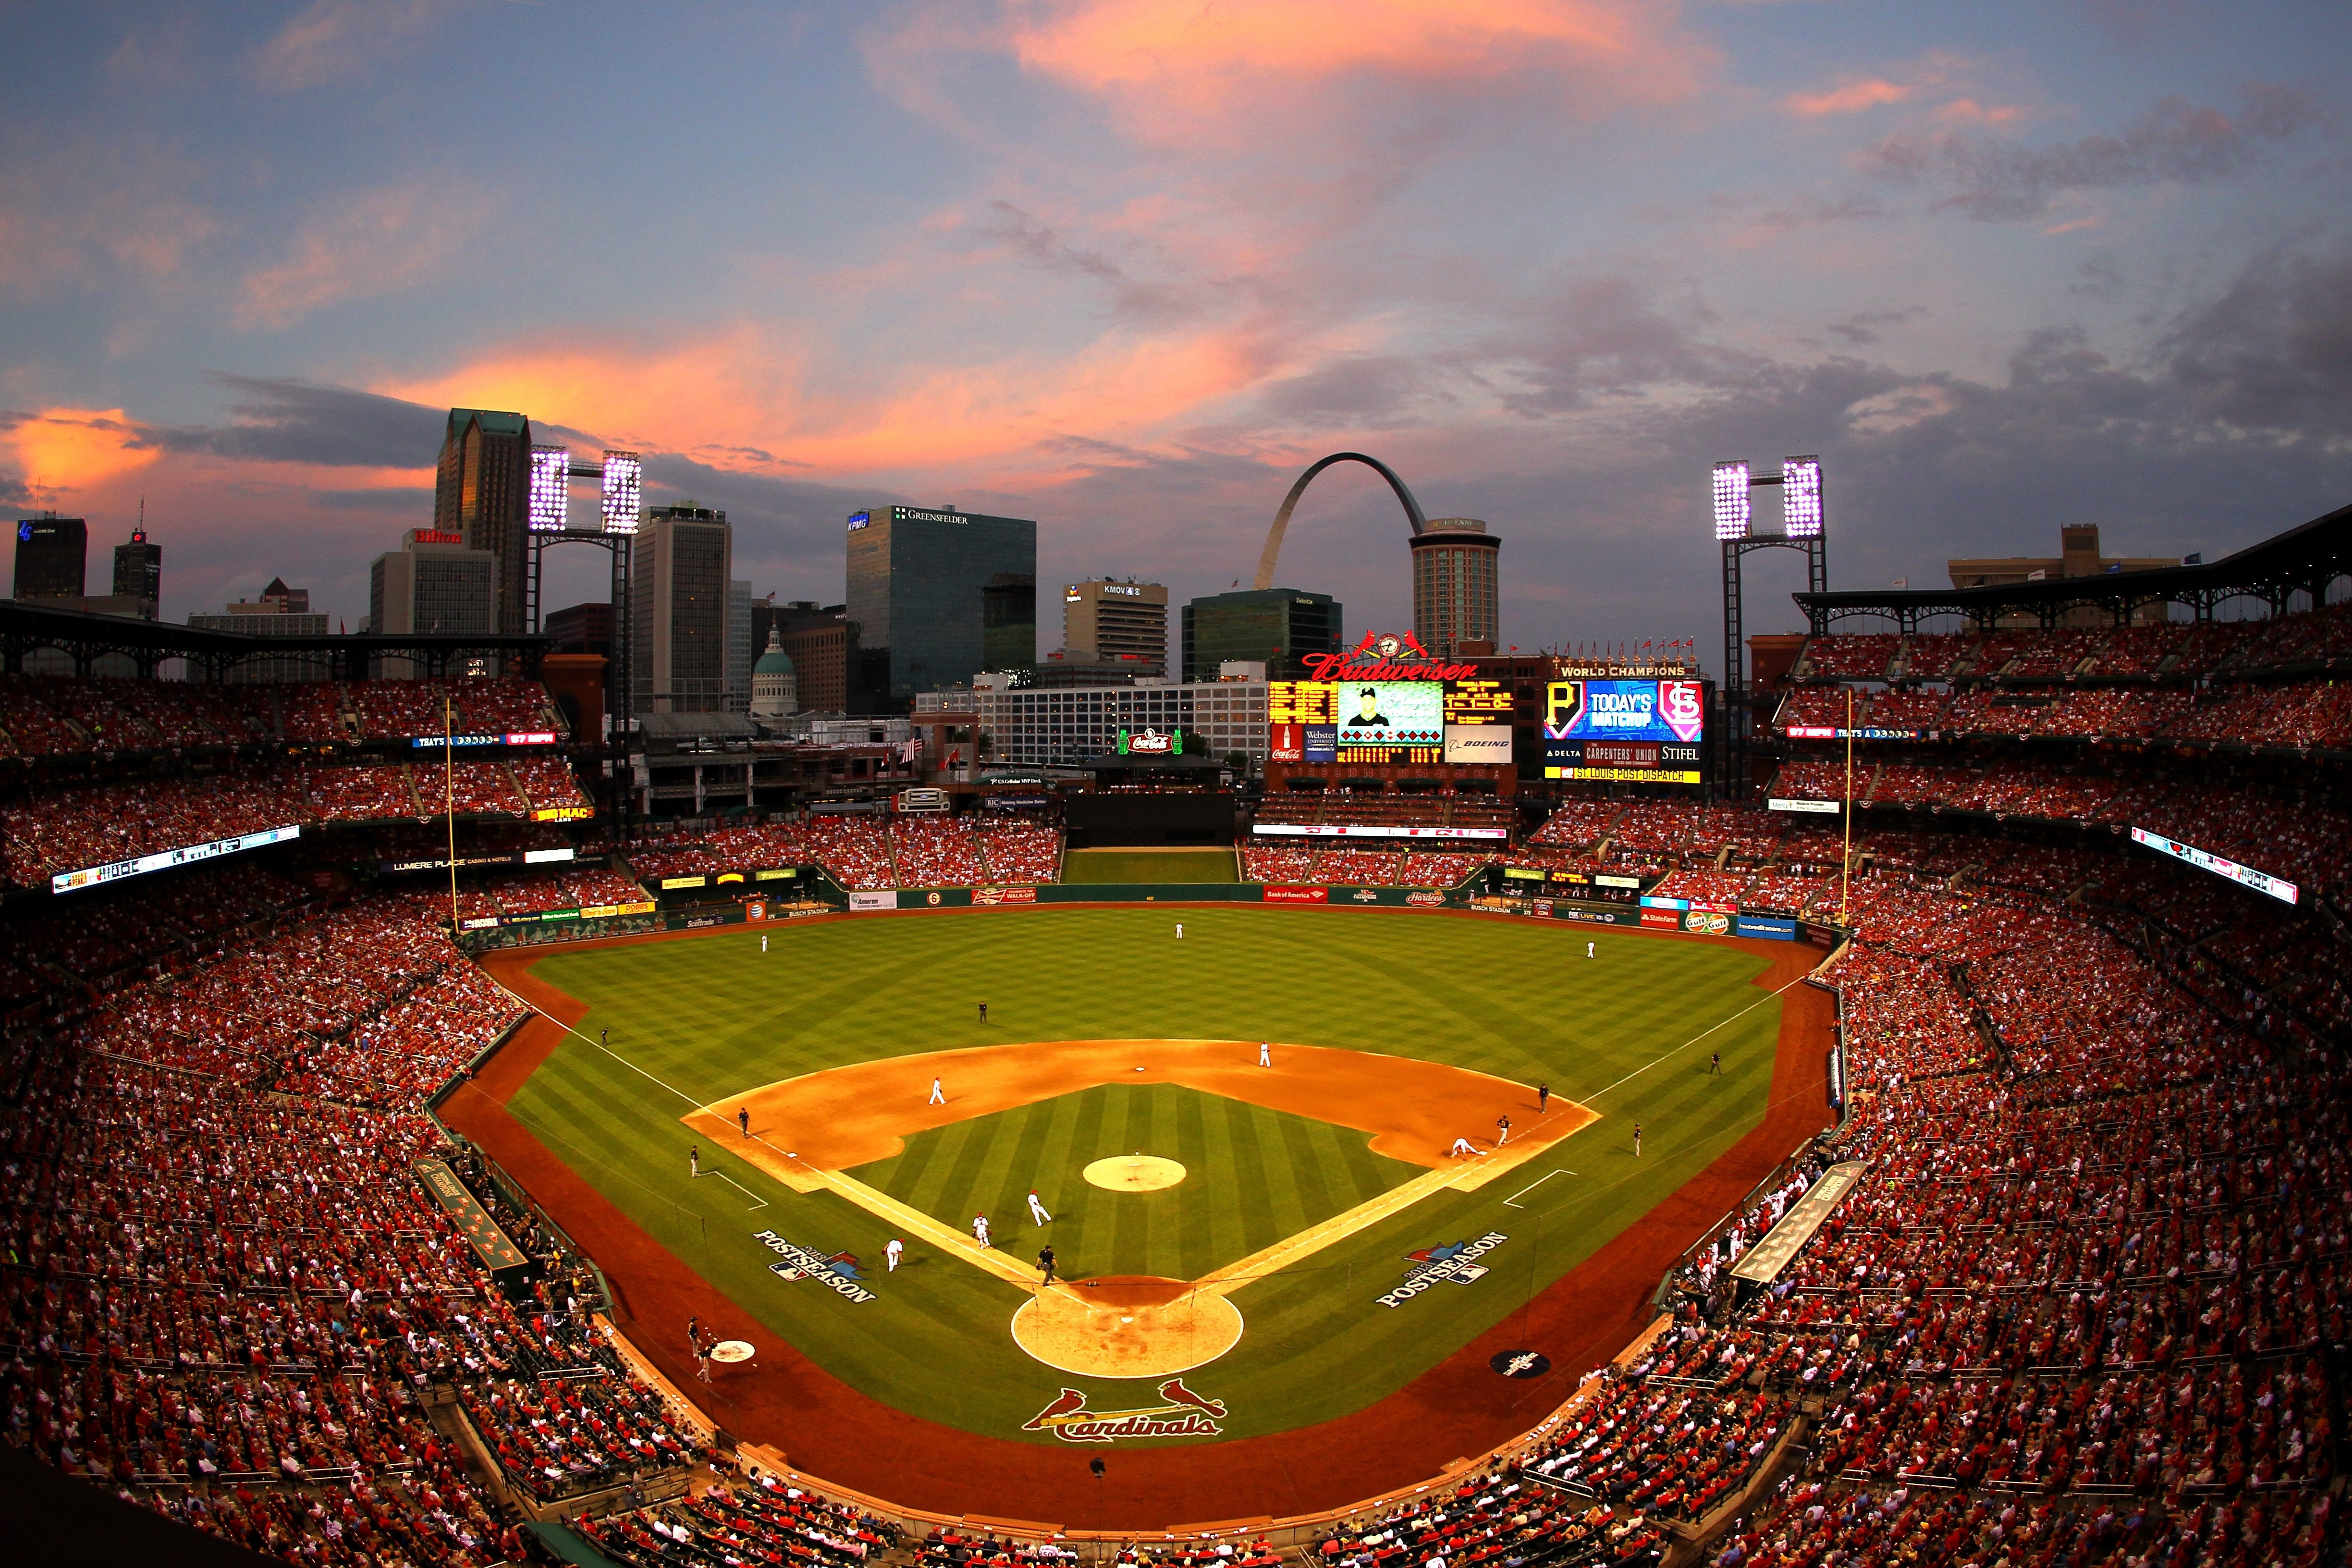 When World Series action shifts to St. Louis on Saturday, Delaware North will be ready for the crowds of Cardinals and Red Sox fans who will descend on Busch Stadium for Game 3. The company will staff the concession stands with 1,800 employees to meet demand.